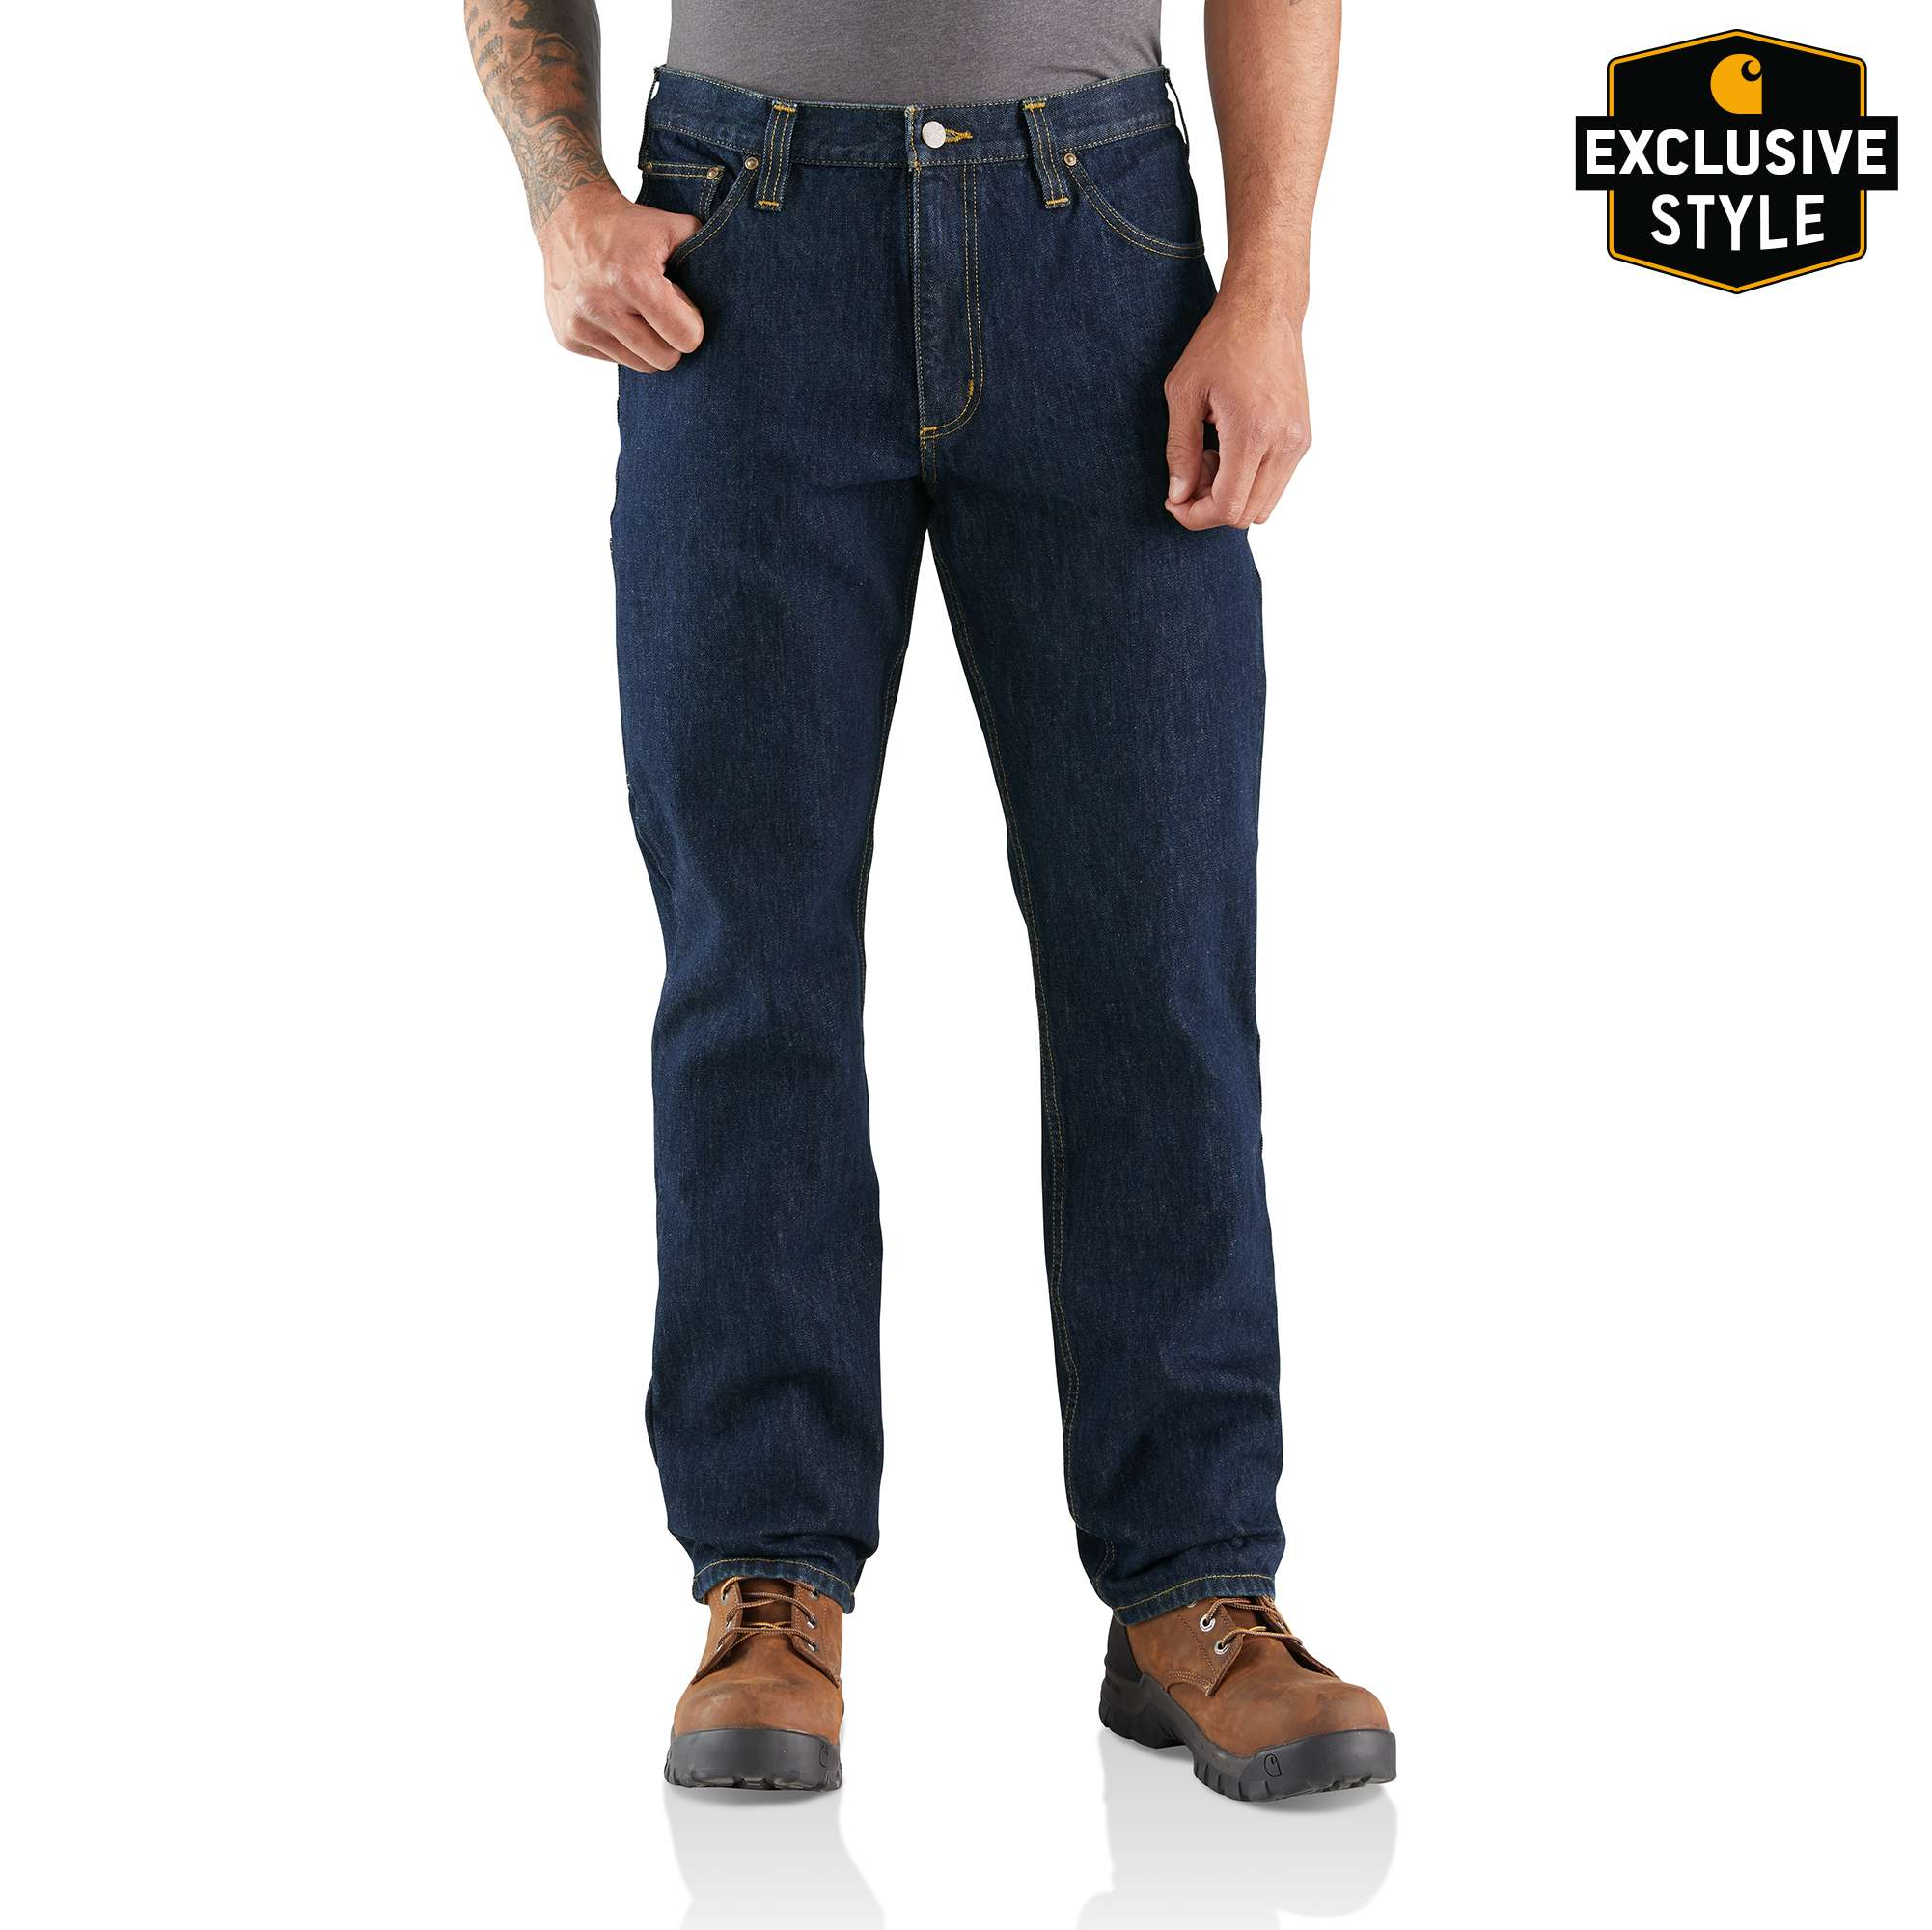 Carhartt Rugged Flex Relaxed Fit Utility Five Pocket Jean